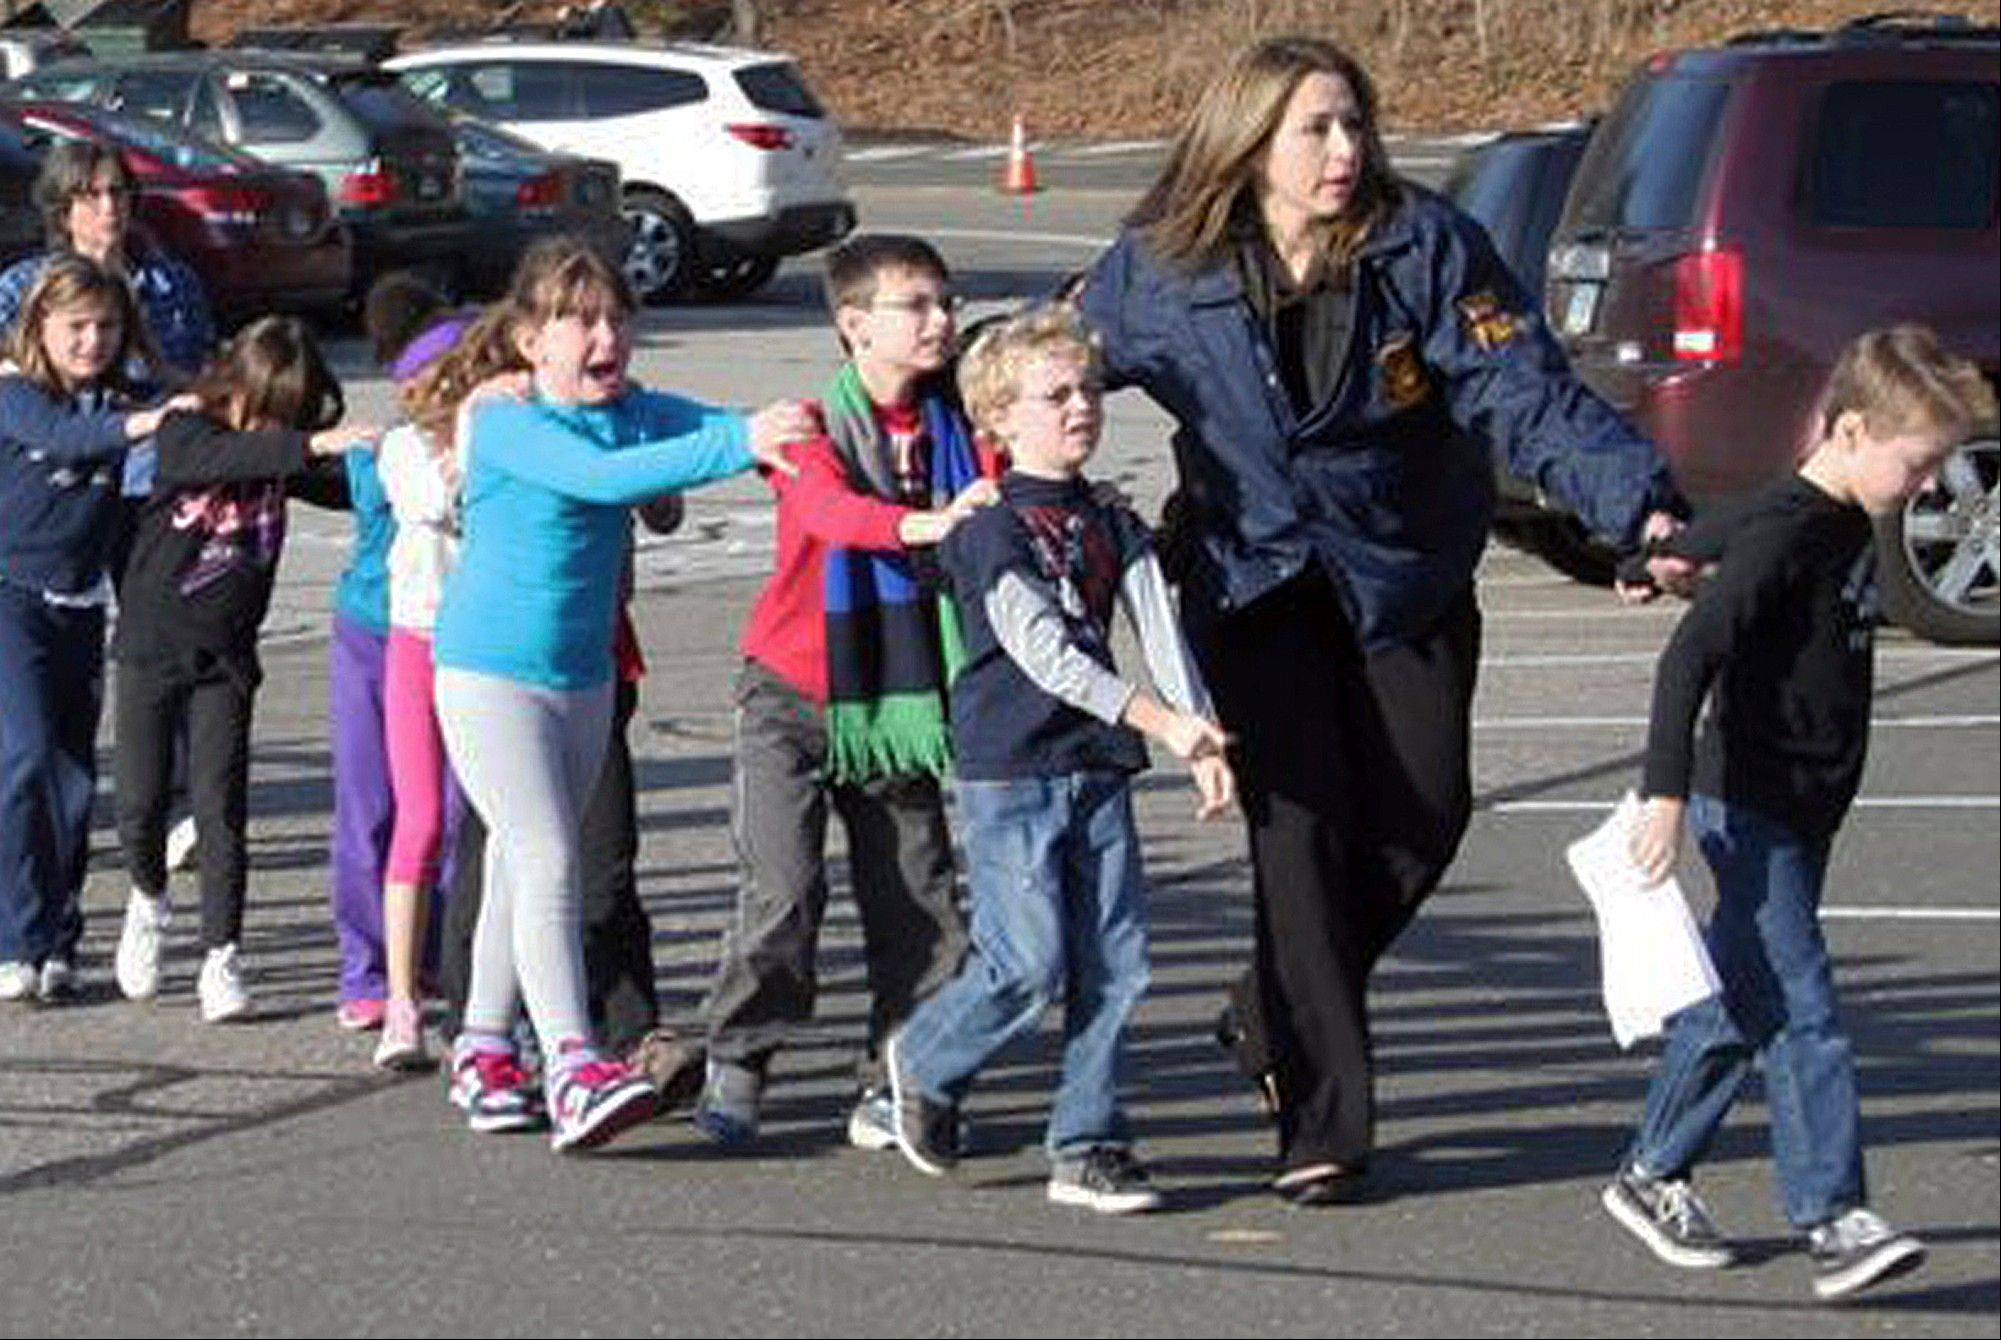 Man kills 26 at Connecticut school, including 20 kids